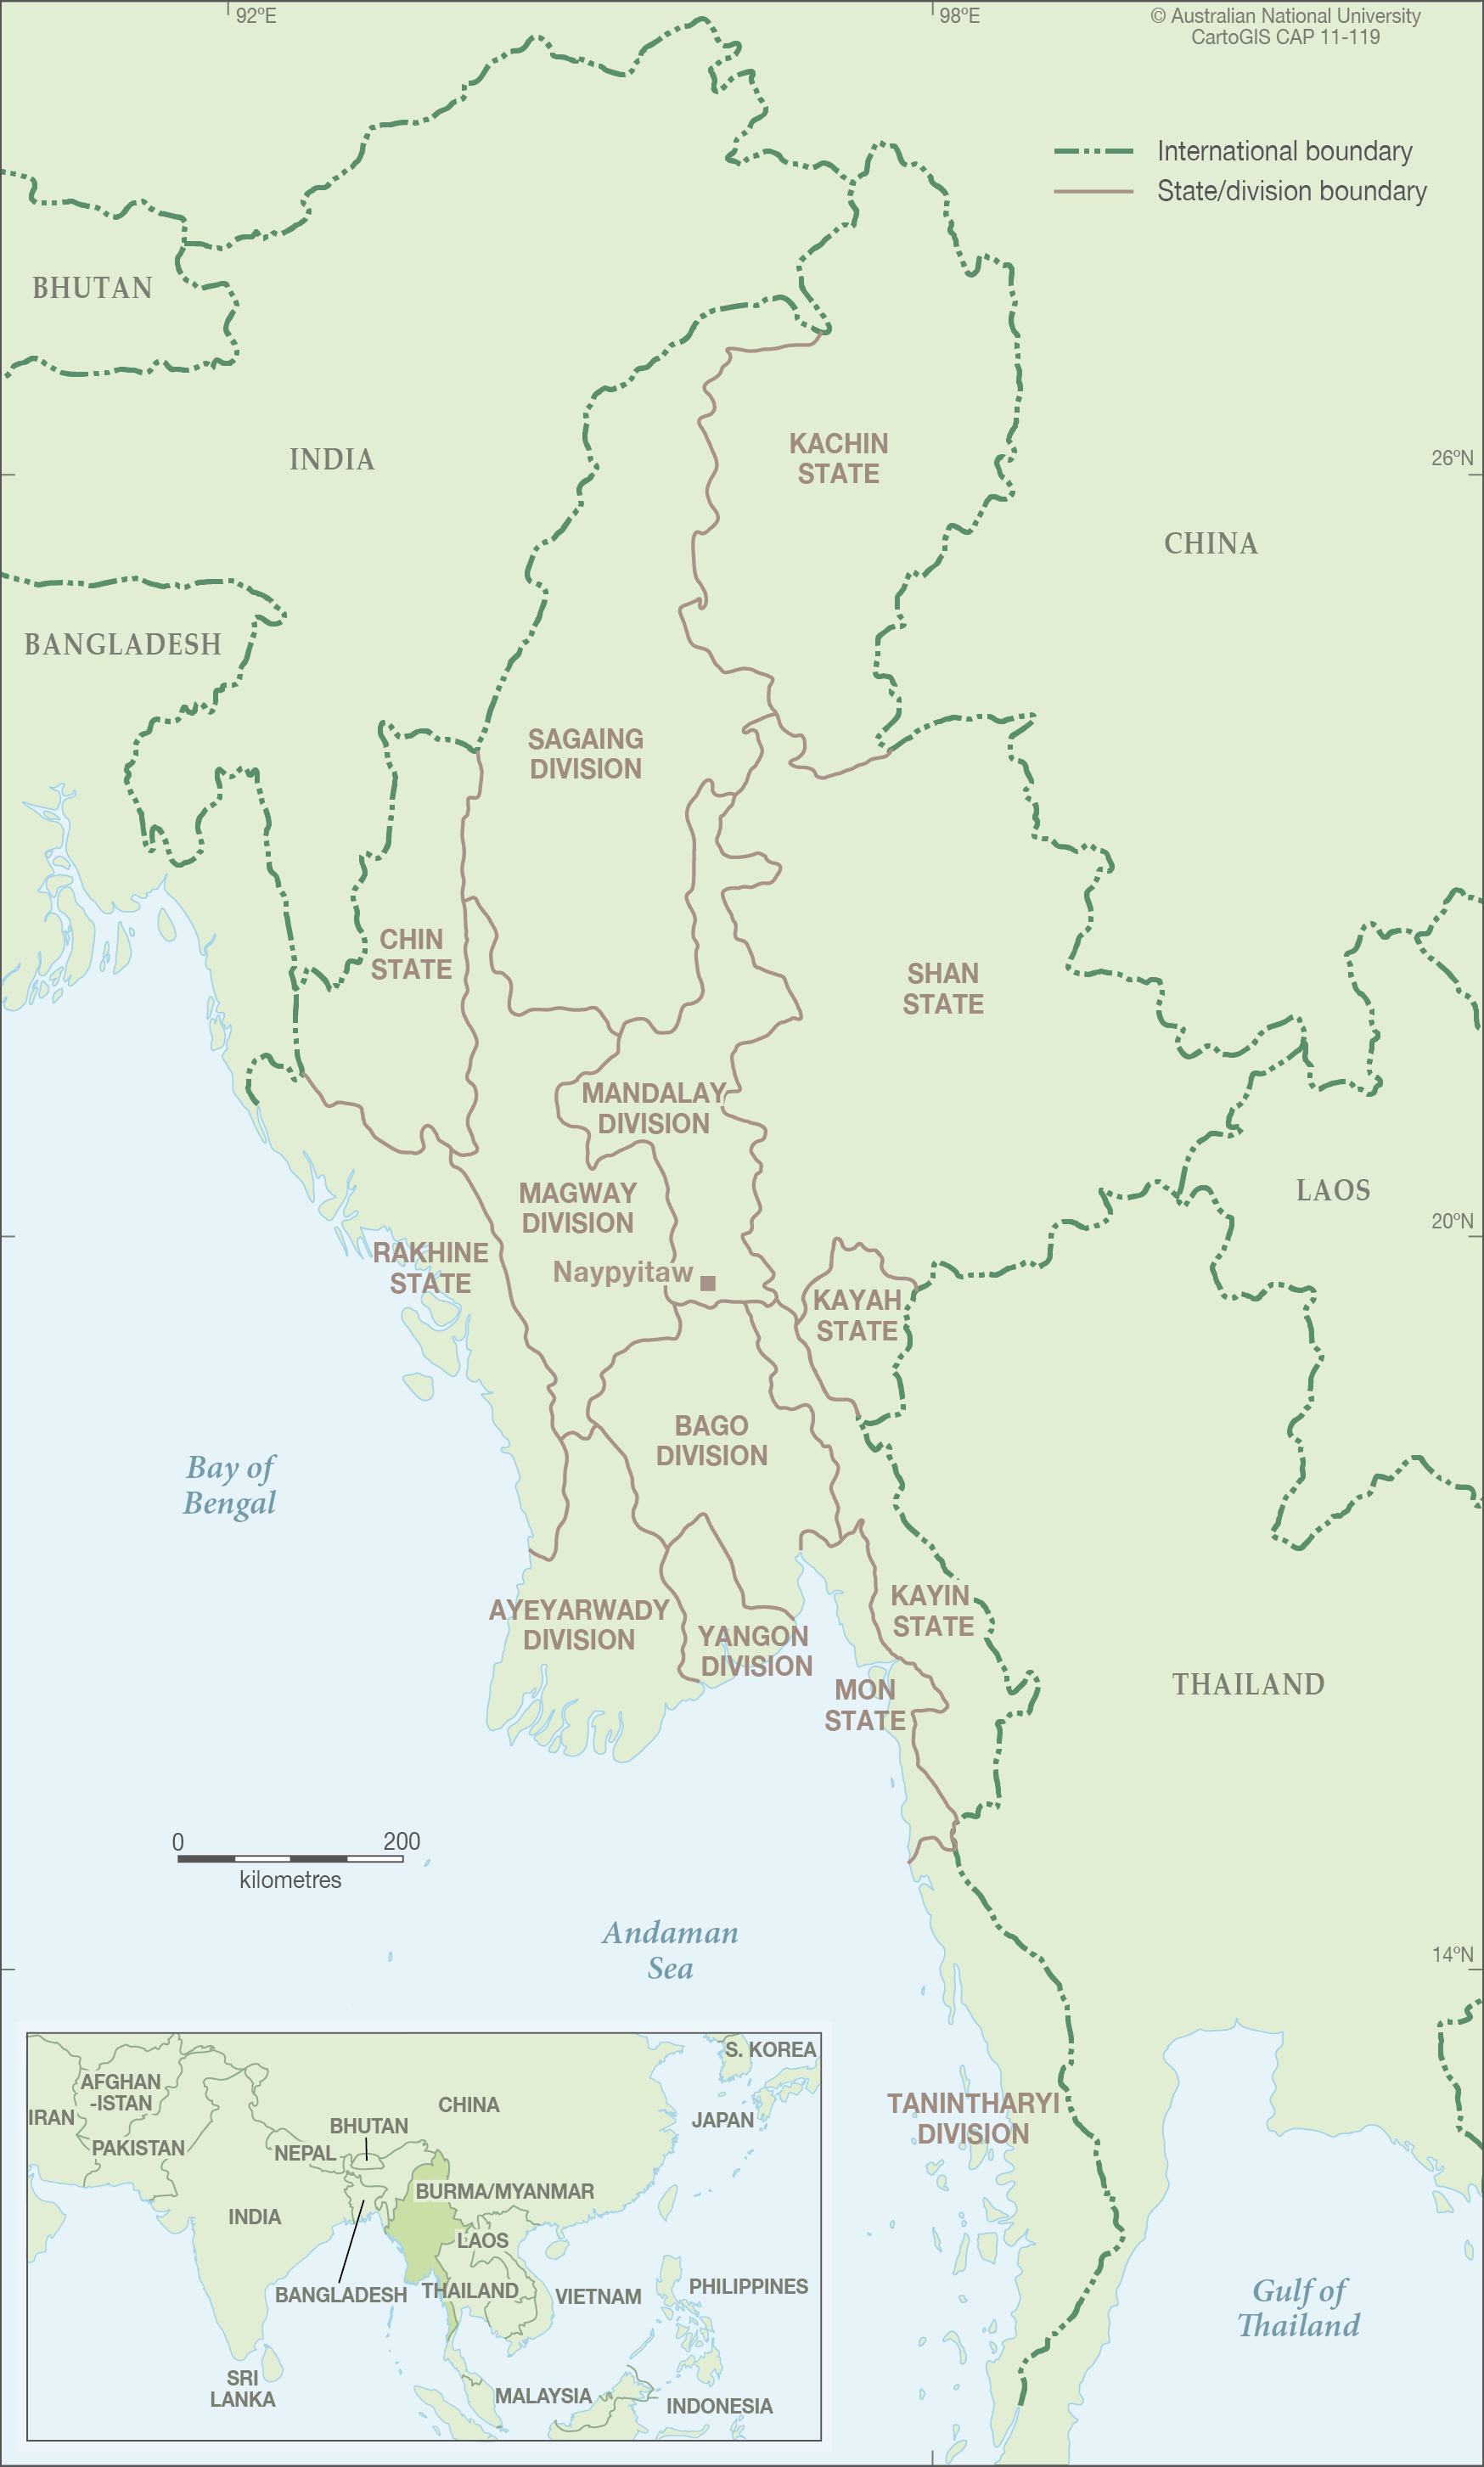 Myanmar with location map - CartoGIS Services Maps Online - ANU